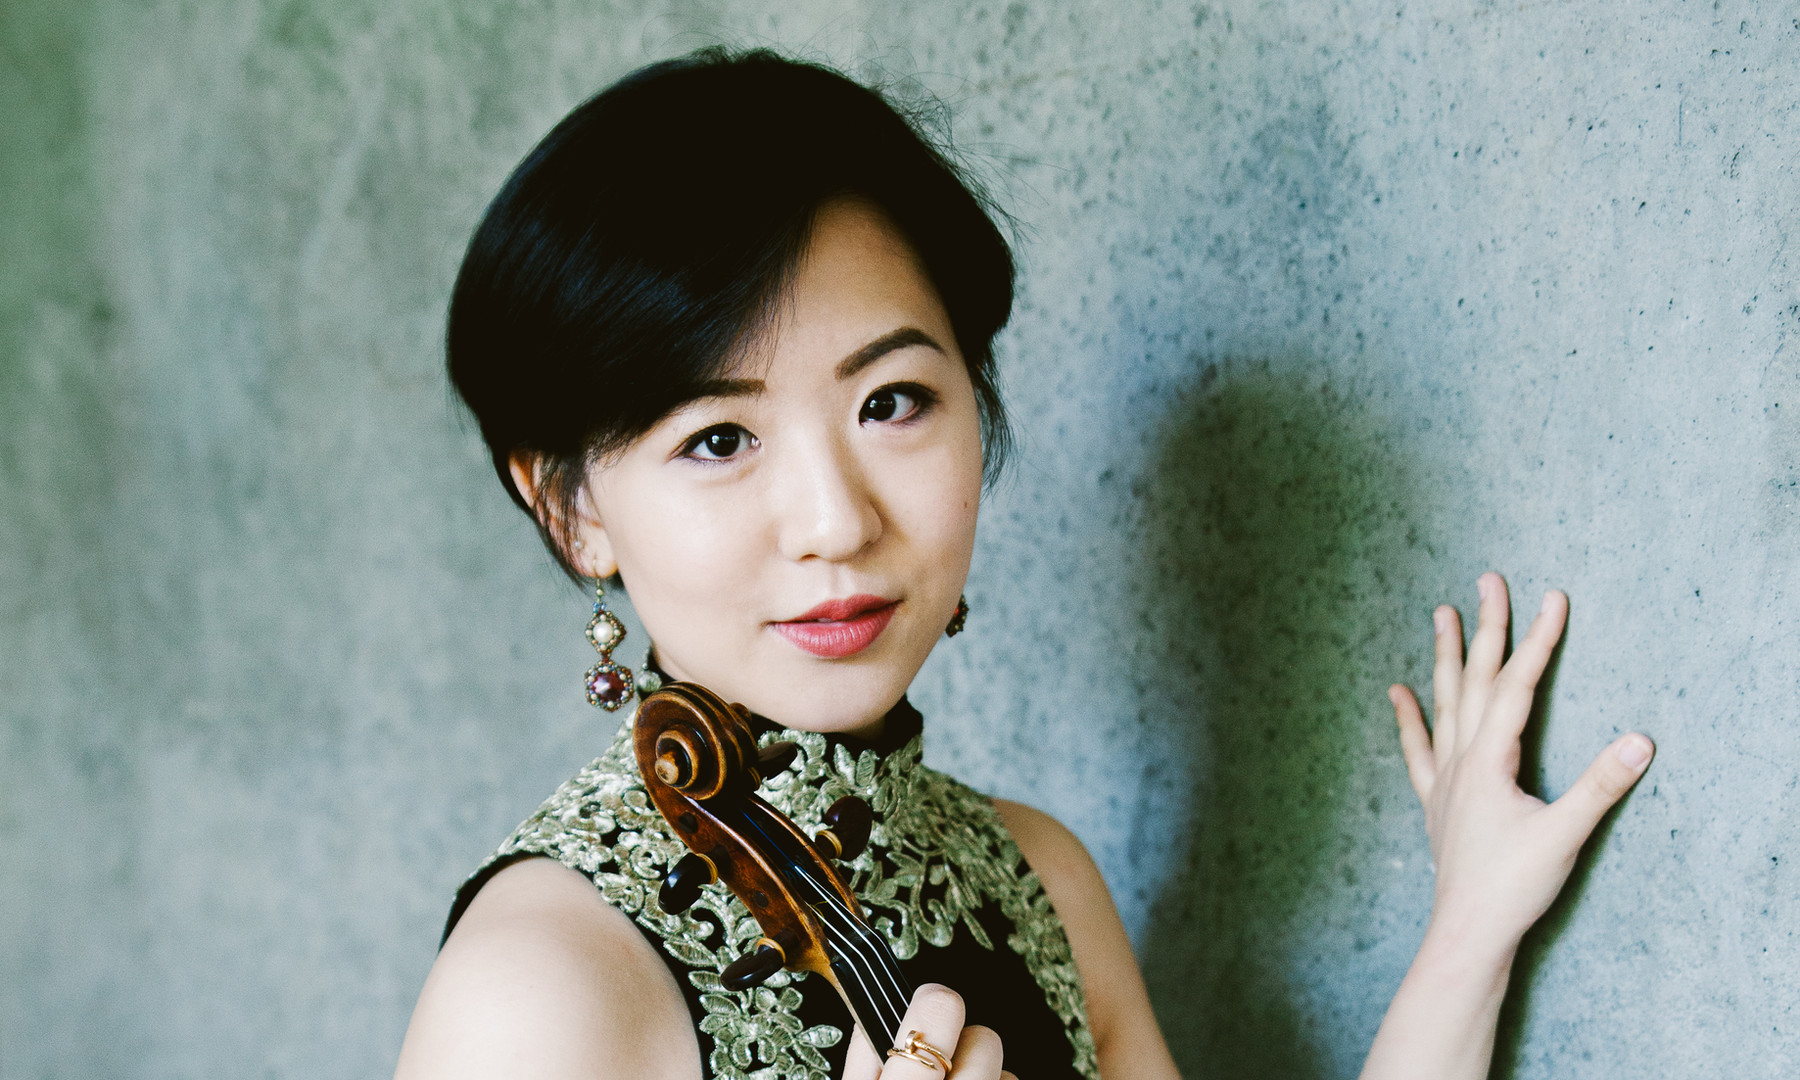 Anna Lee violinist photo by Katie Borrazzo taken 2018 at Harvard